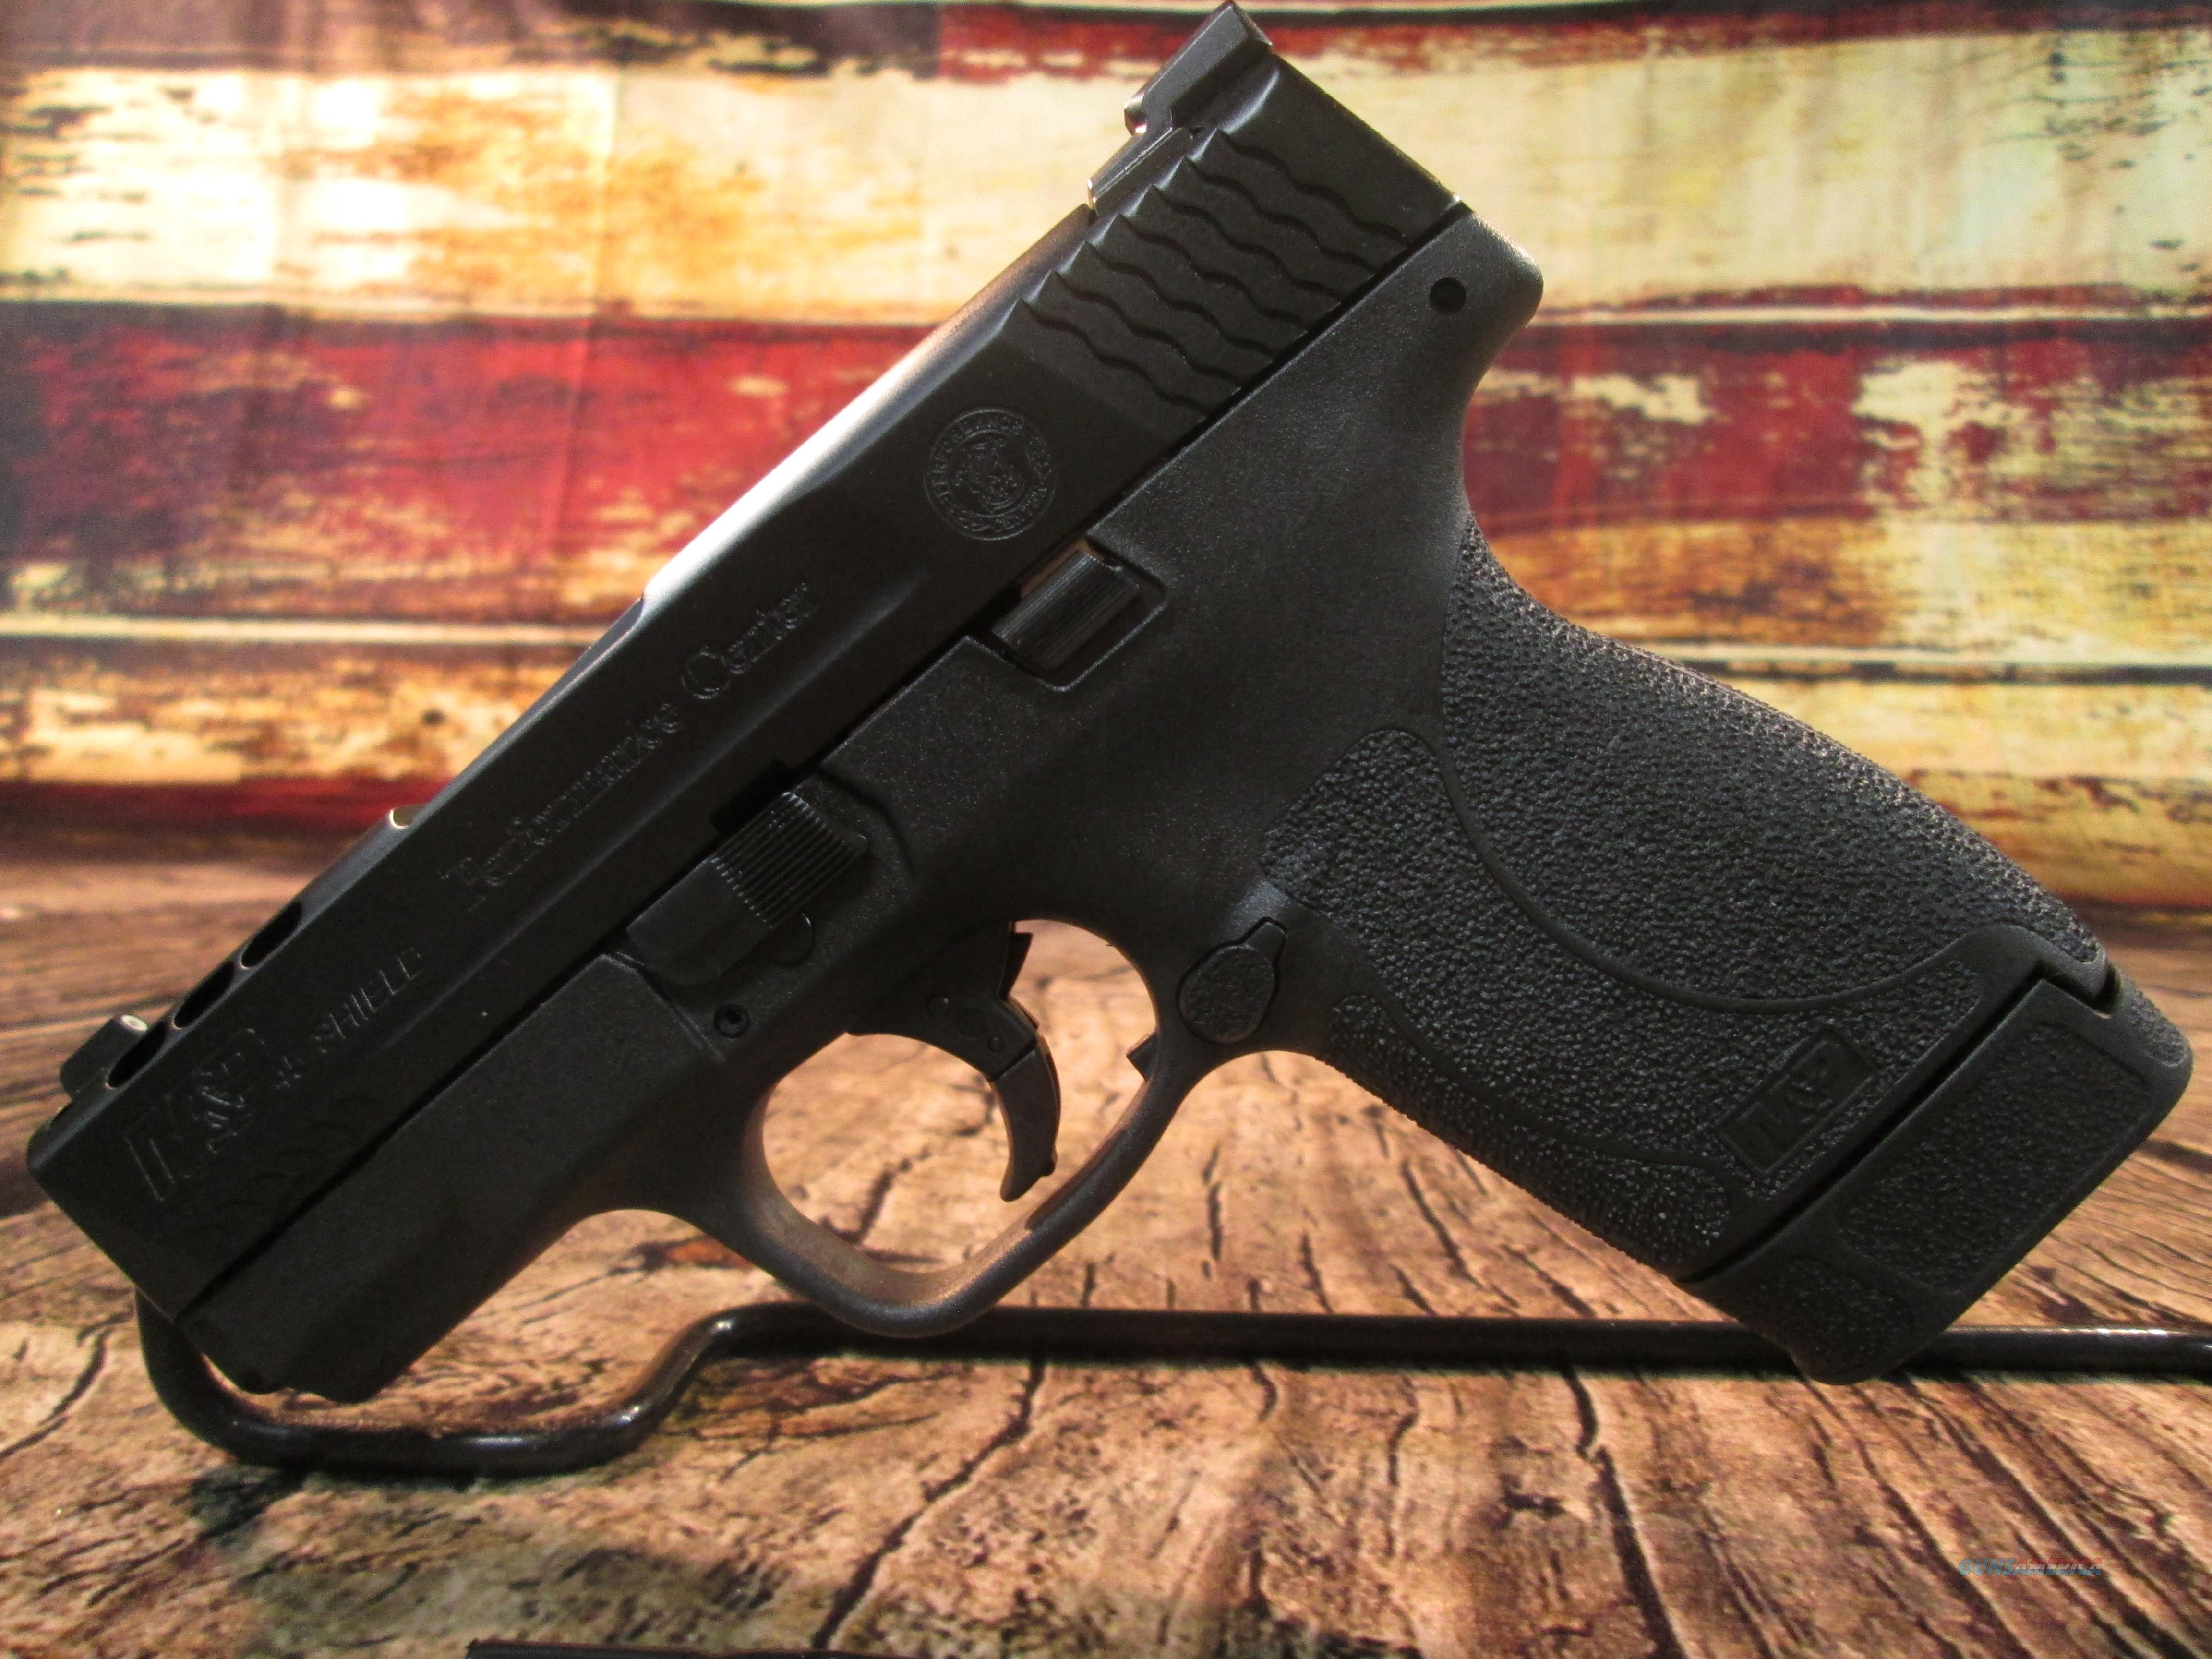 SMITH & WESSON  PERFORMANCE CENTER M&P SHIELD 45 ACP (11727) {{FACTORY MAIL-IN REBATE OFFER}  Guns > Pistols > Smith & Wesson Pistols - Autos > Shield